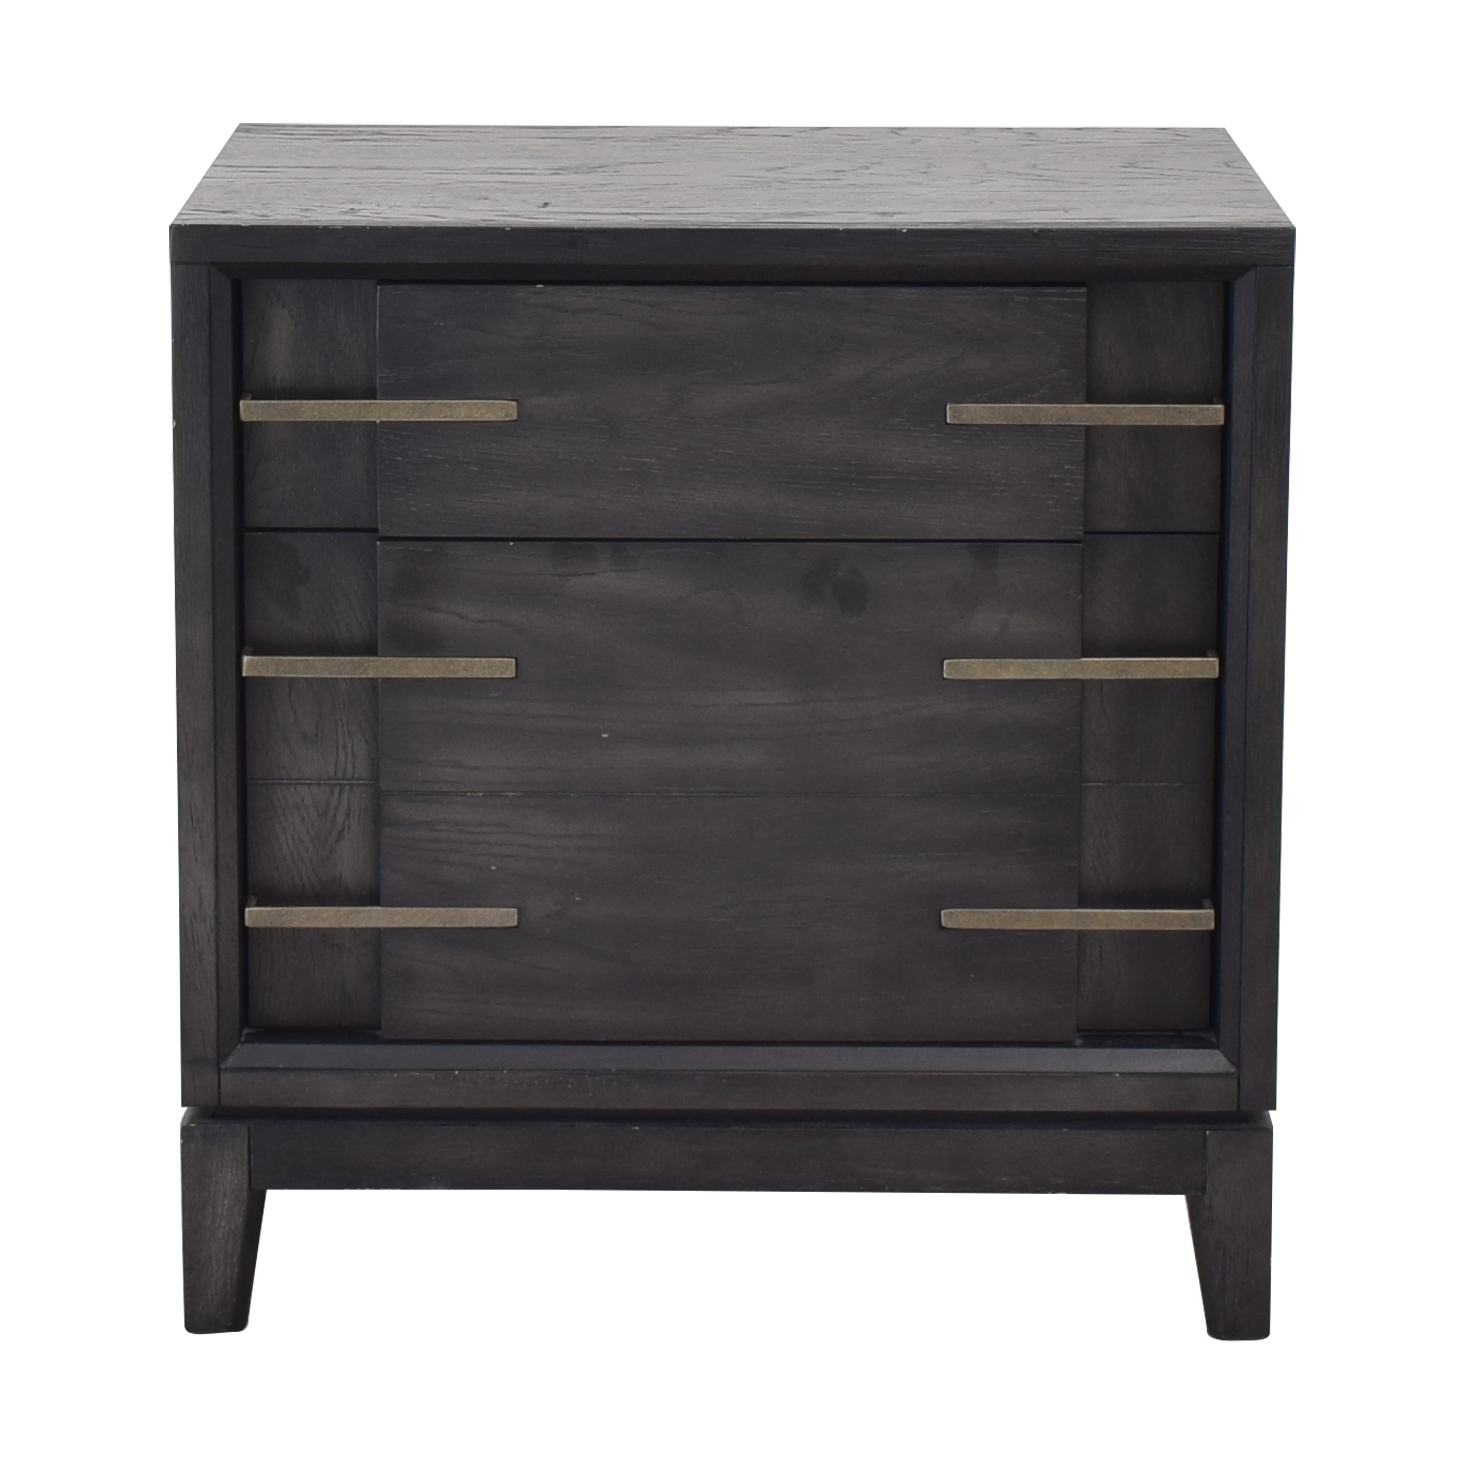 Restoration Hardware Restoration Hardware Nightstand discount